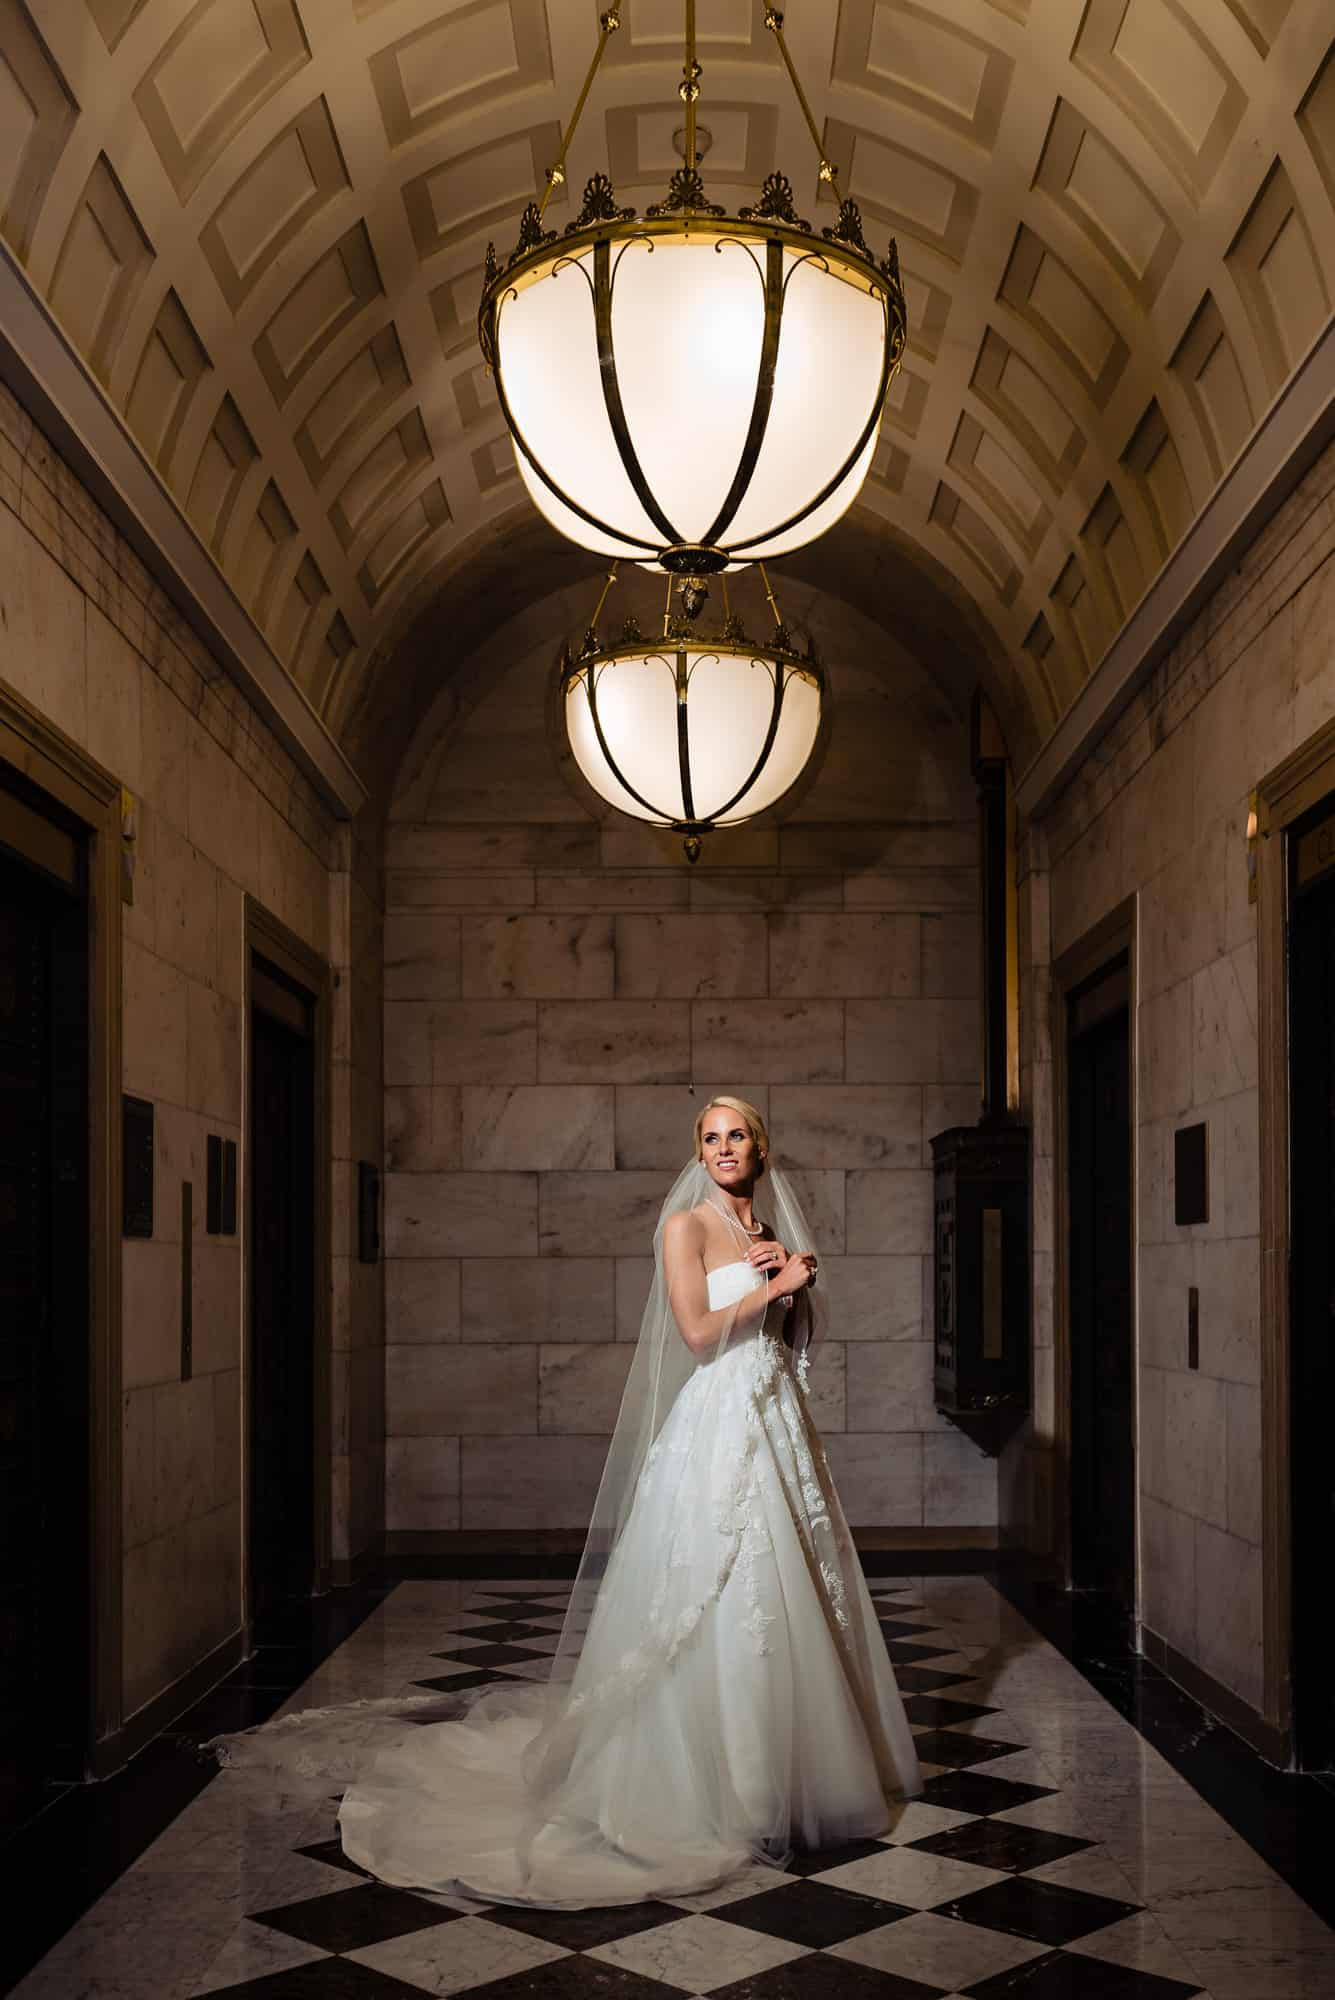 Image of bride holding veil at the Ritz Carlton Philadelphia